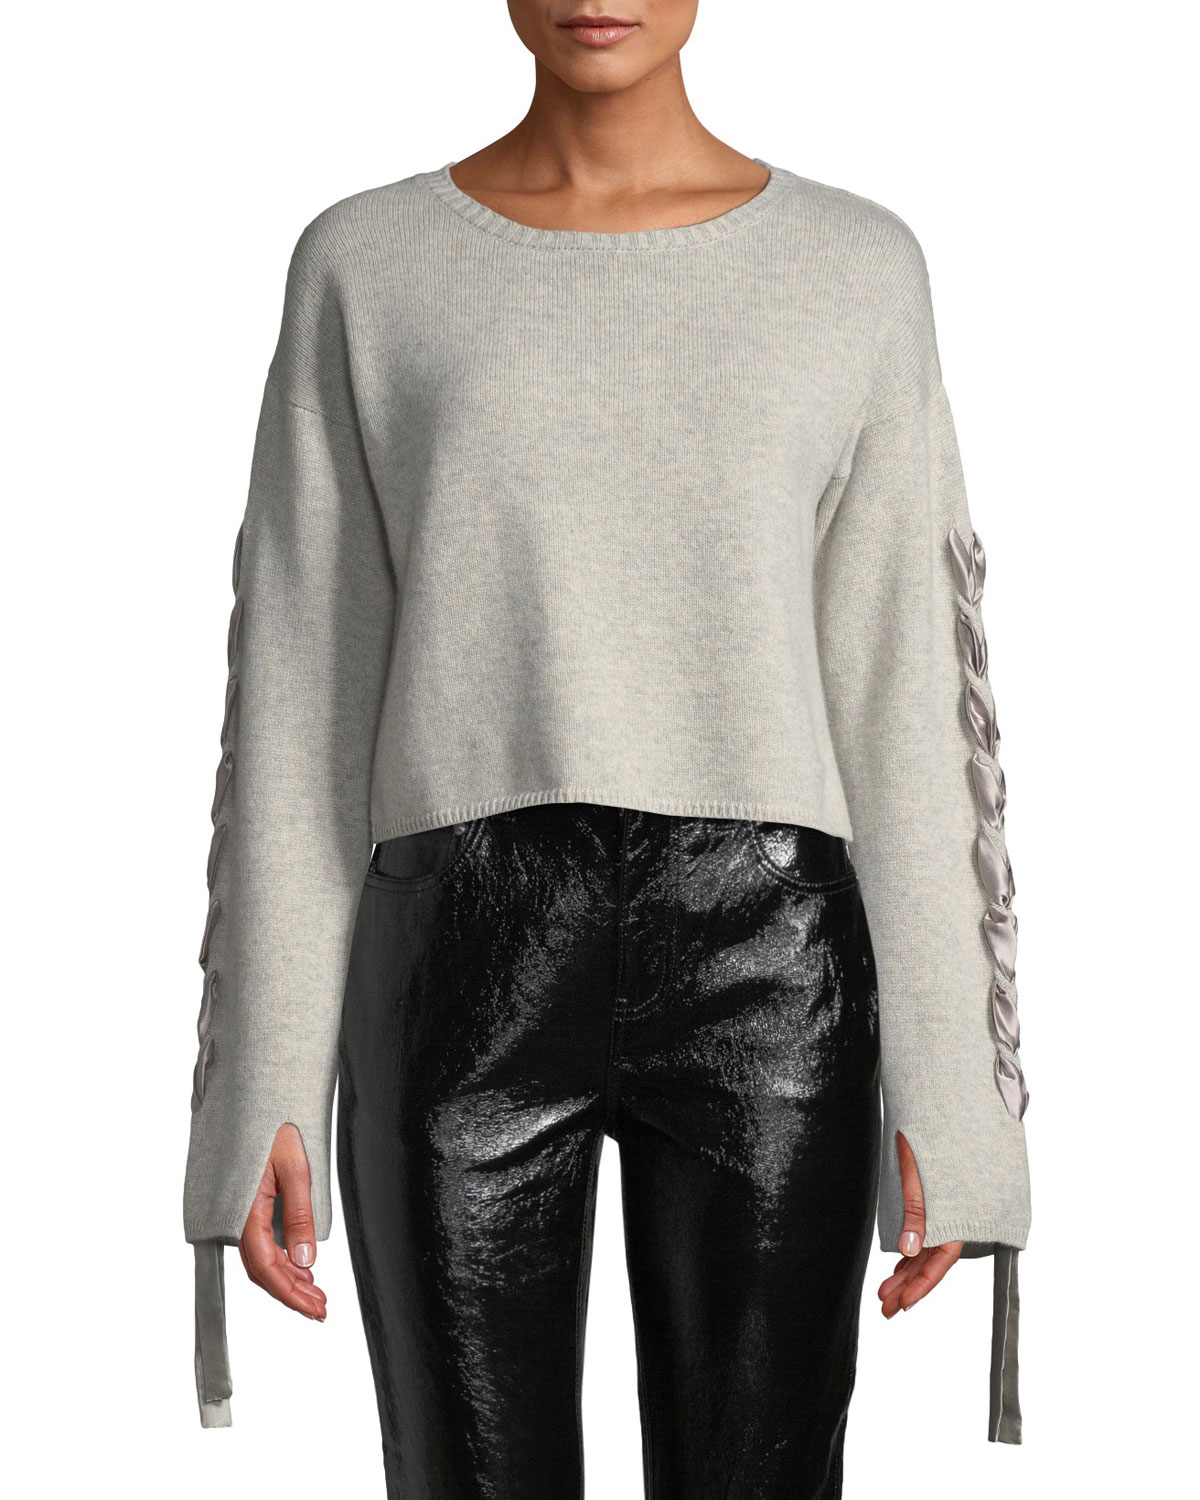 SABLYN Ruby Lace-Up Cropped Cashmere Sweater in Gray